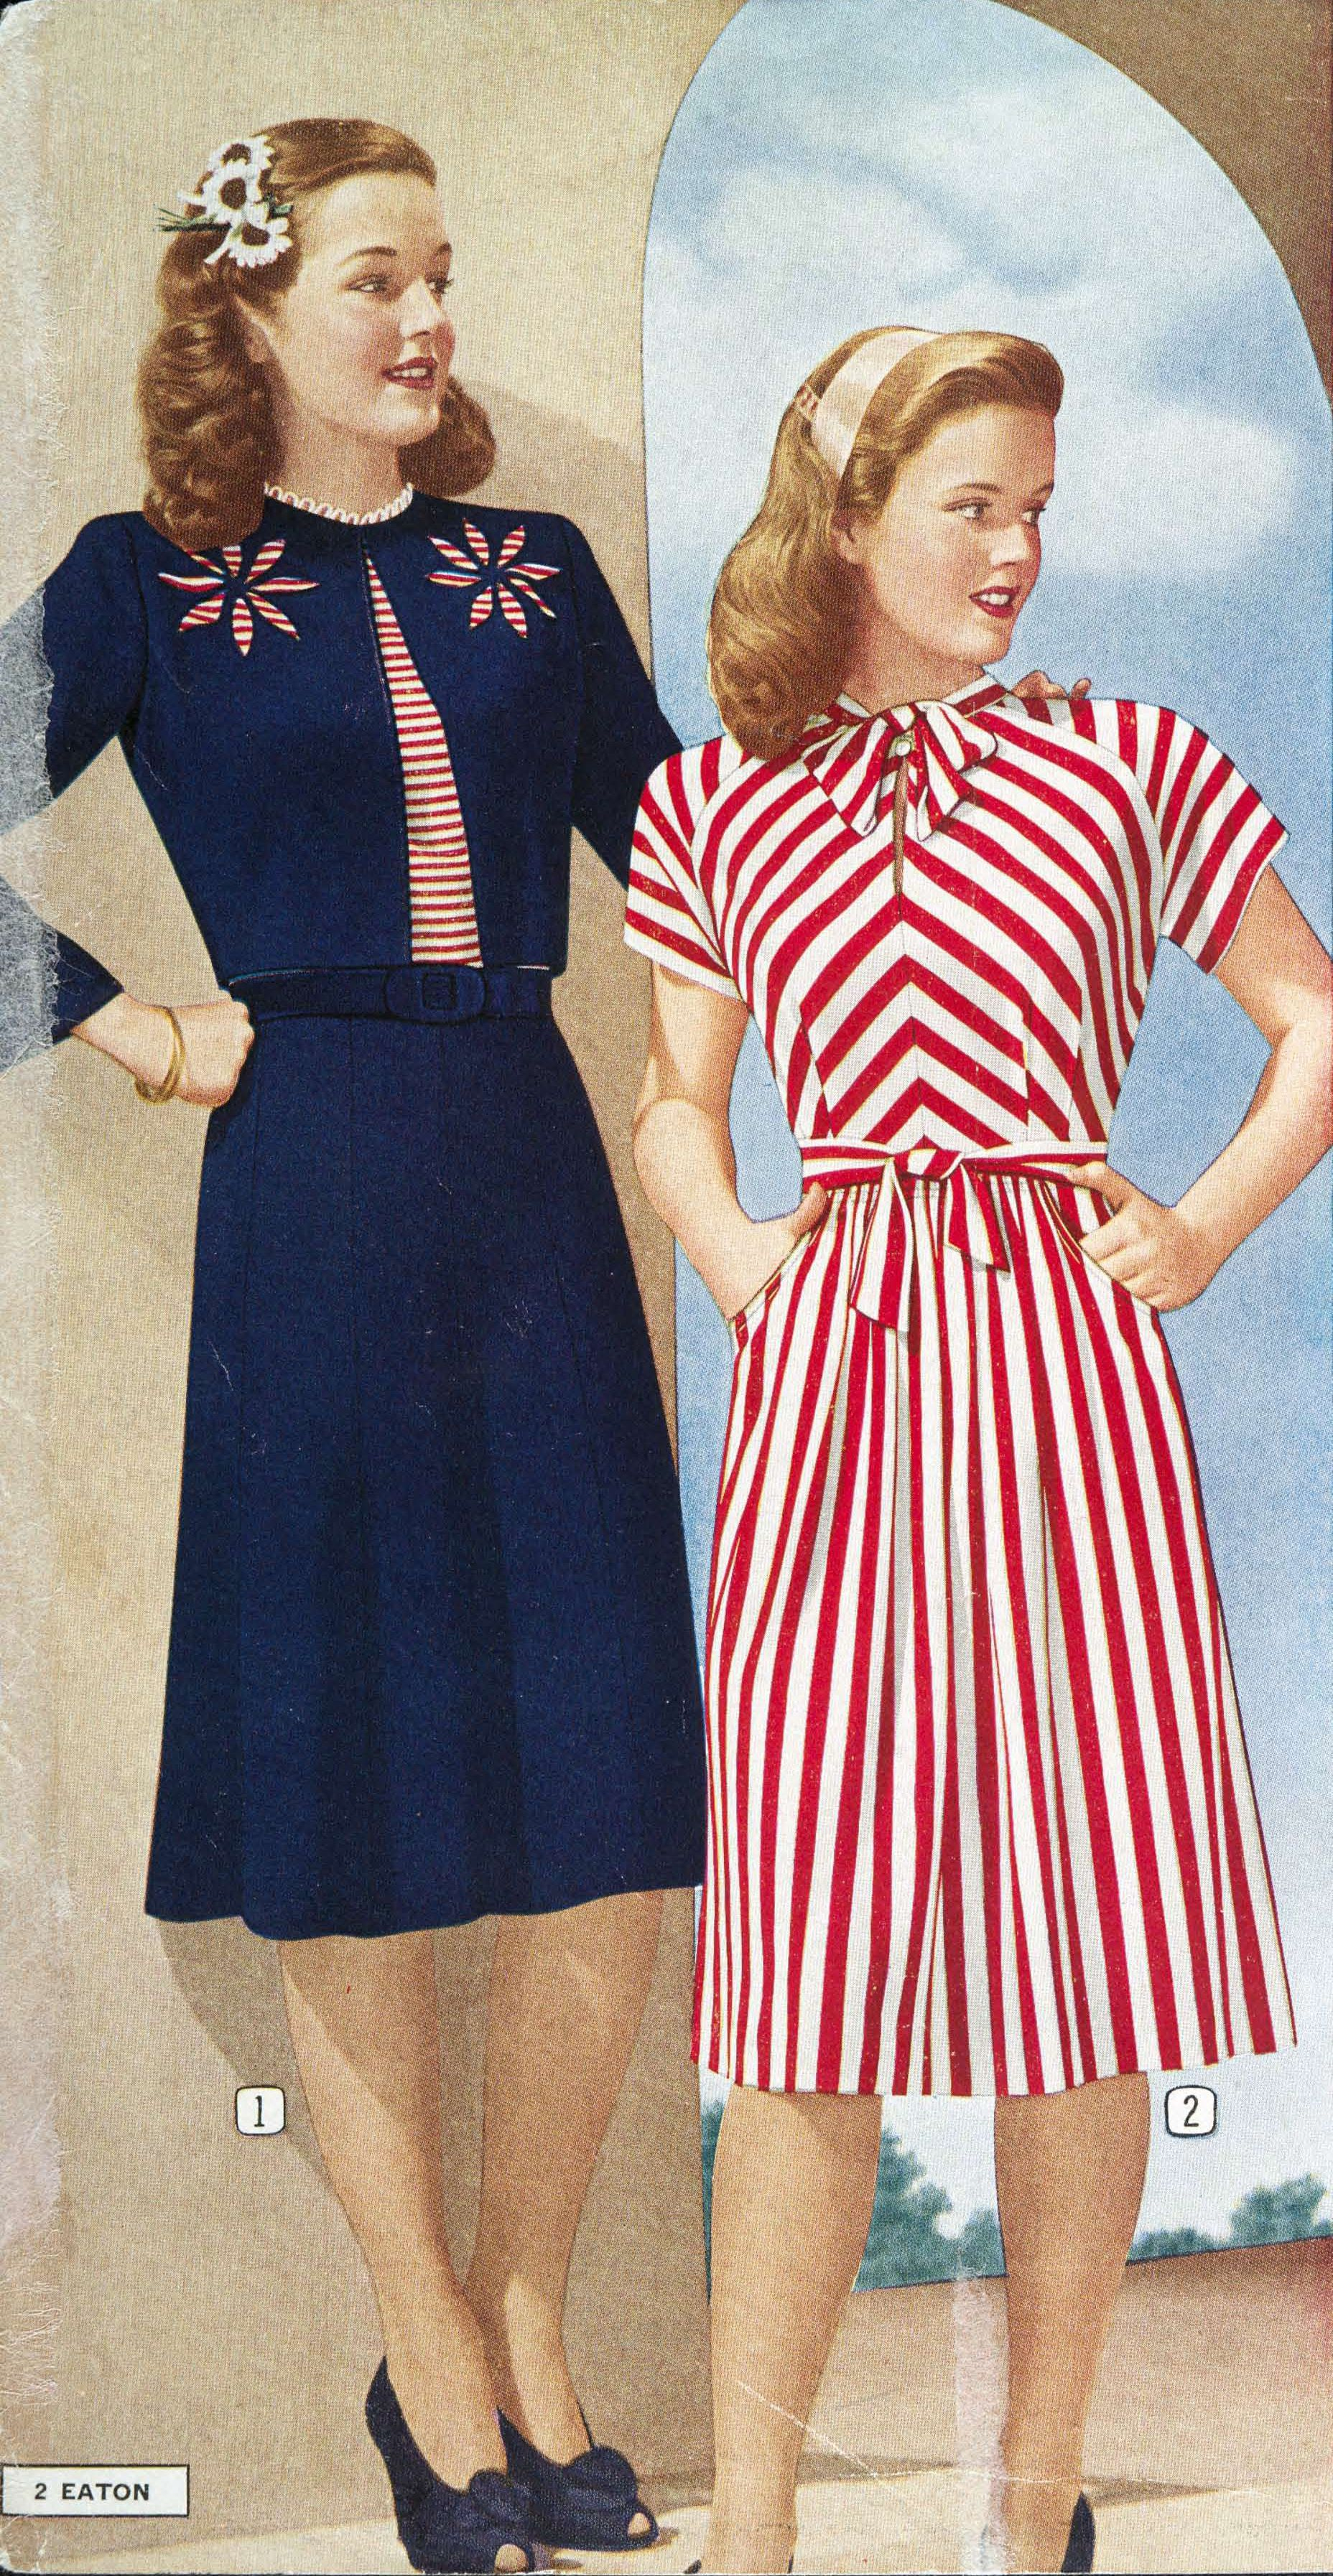 Vintage Sailor Nautical Style Clothing | Costume history ...